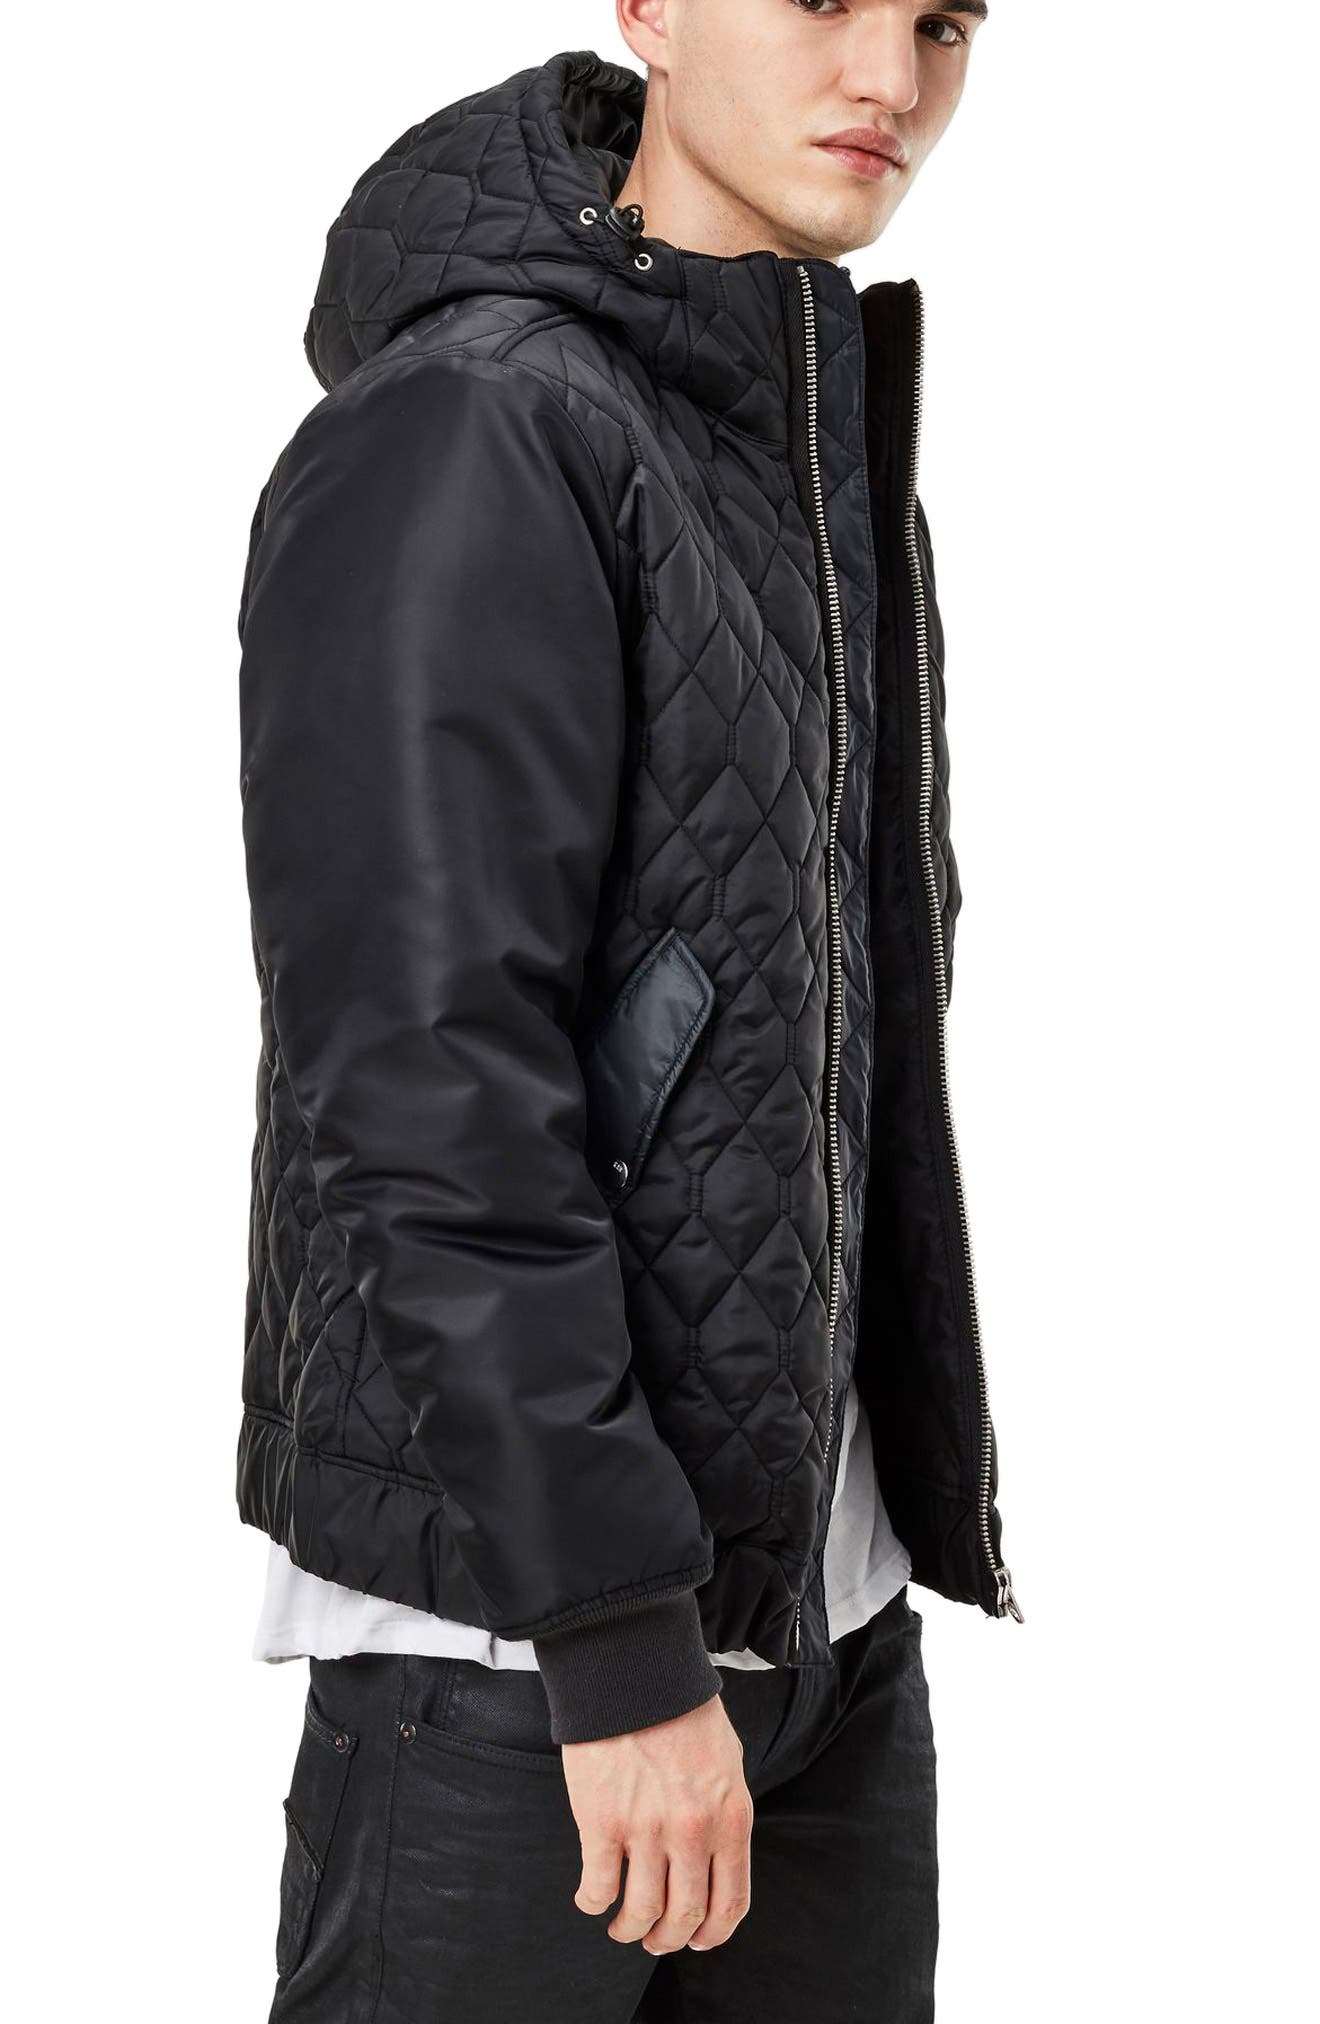 Meefic Hybrid Quilted Jacket,                             Alternate thumbnail 3, color,                             Black